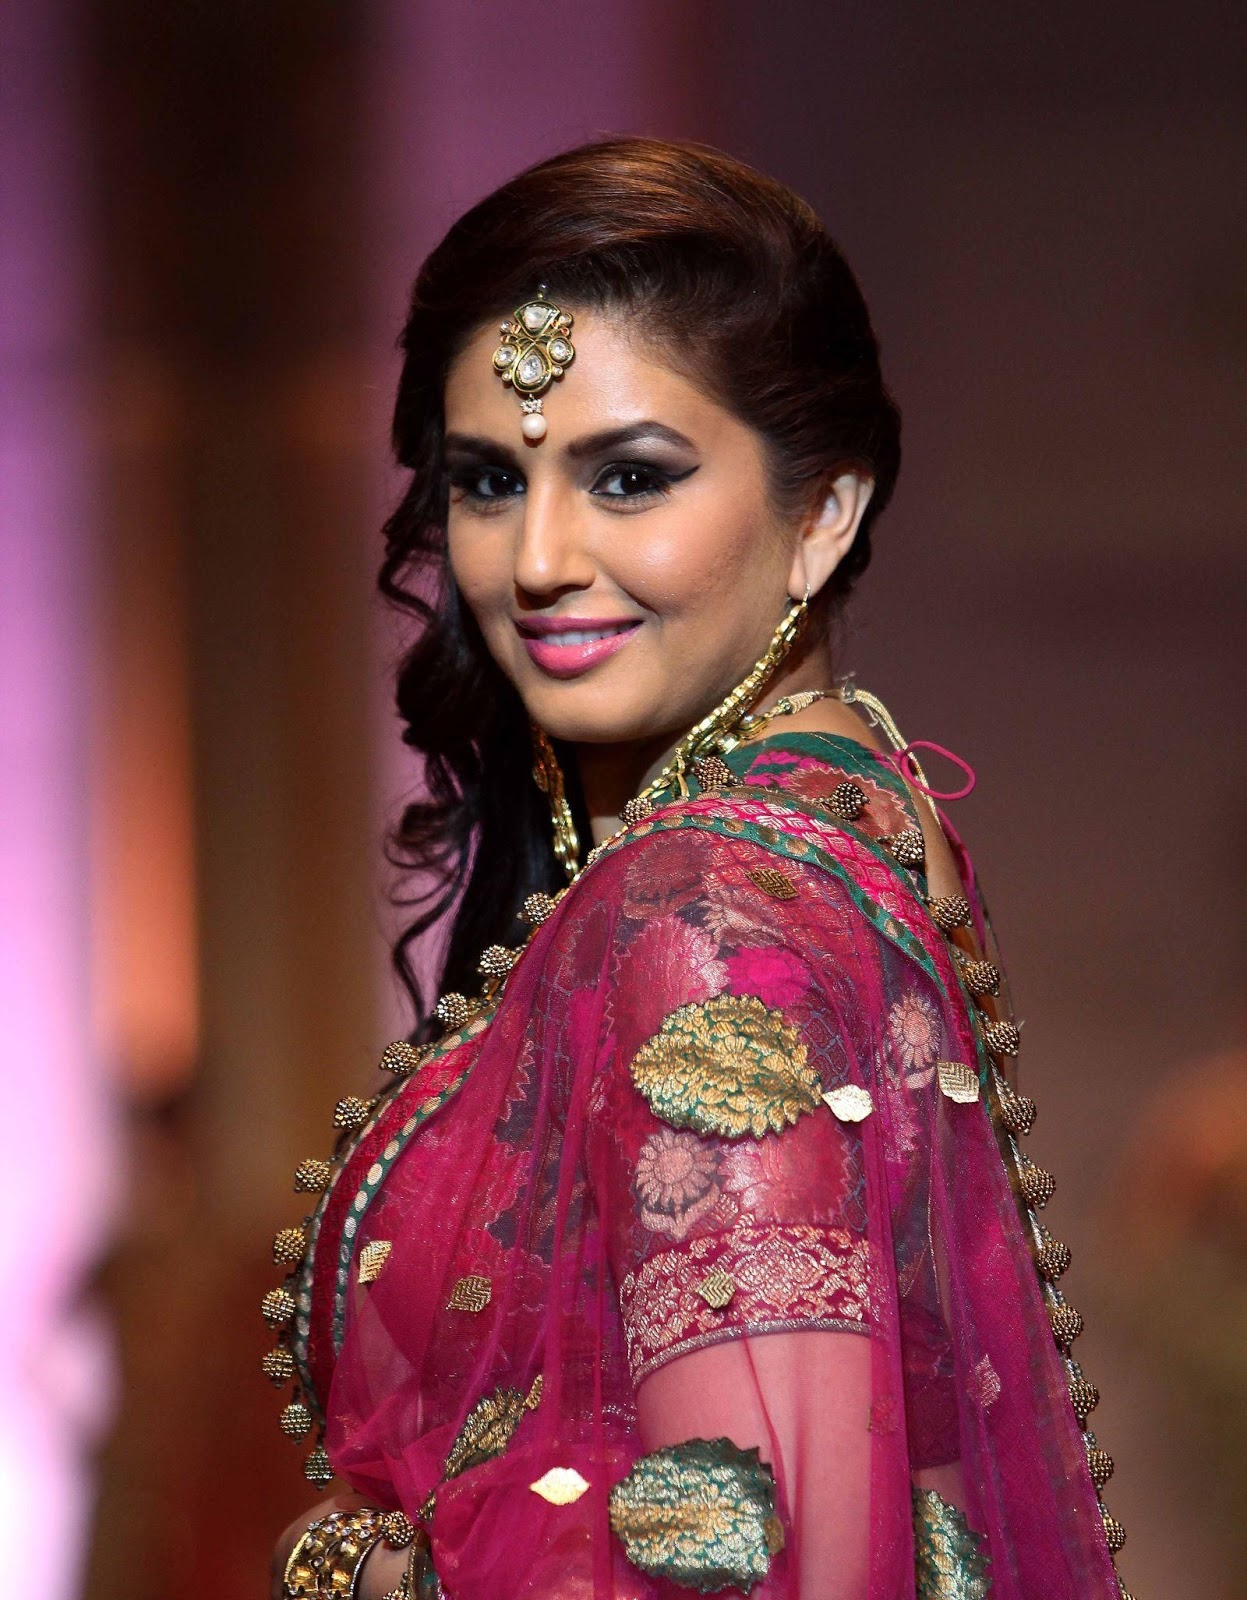 HD Images of Huma Qureshi at India Bridal Fashion Week (IBFW) Aamby Valley